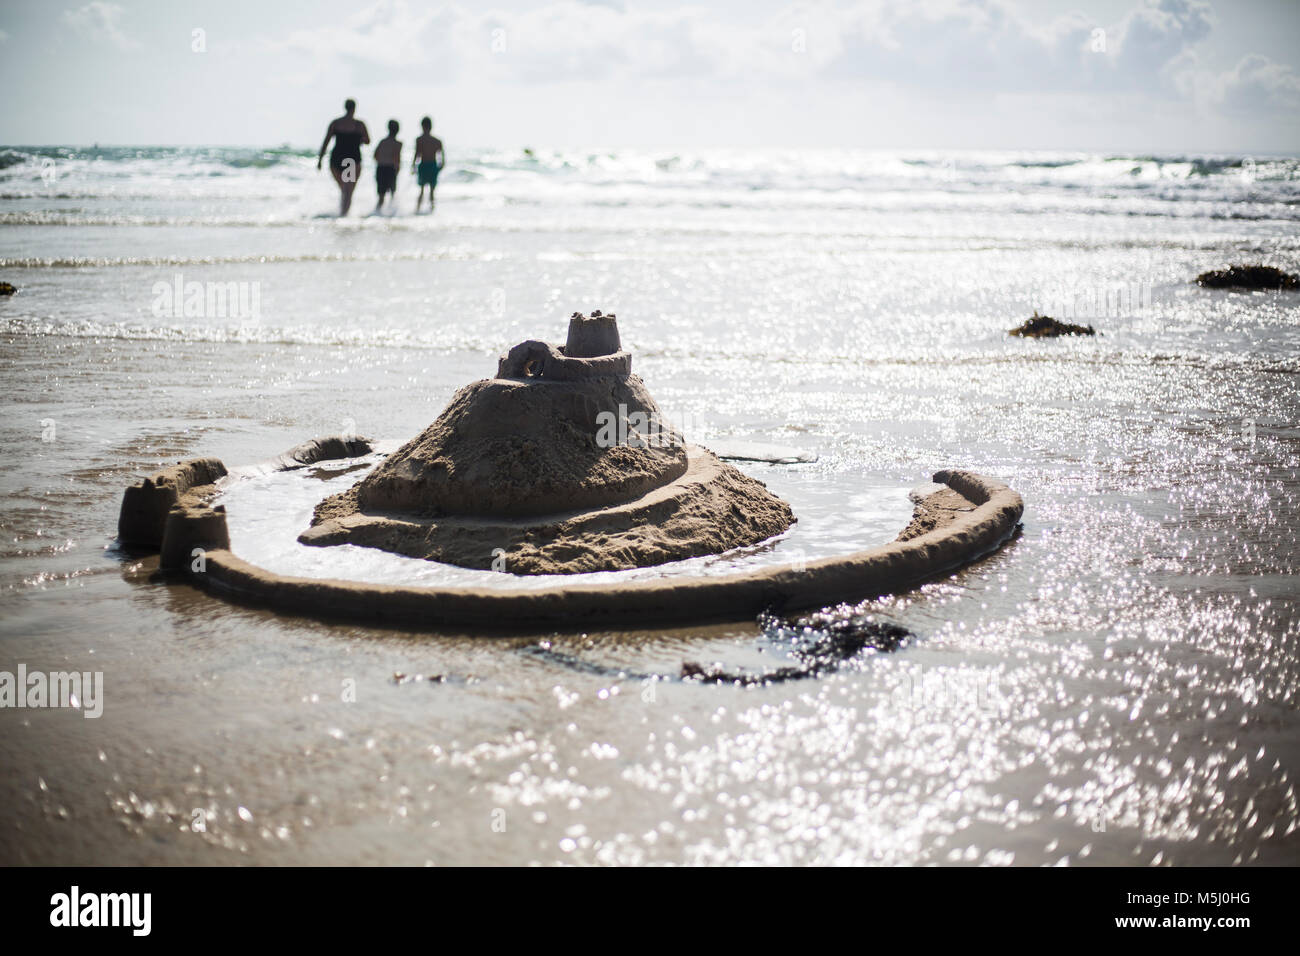 Sesso In Vasca Da Bagno Bathing Immagini And Bathing Fotos Stock Alamy